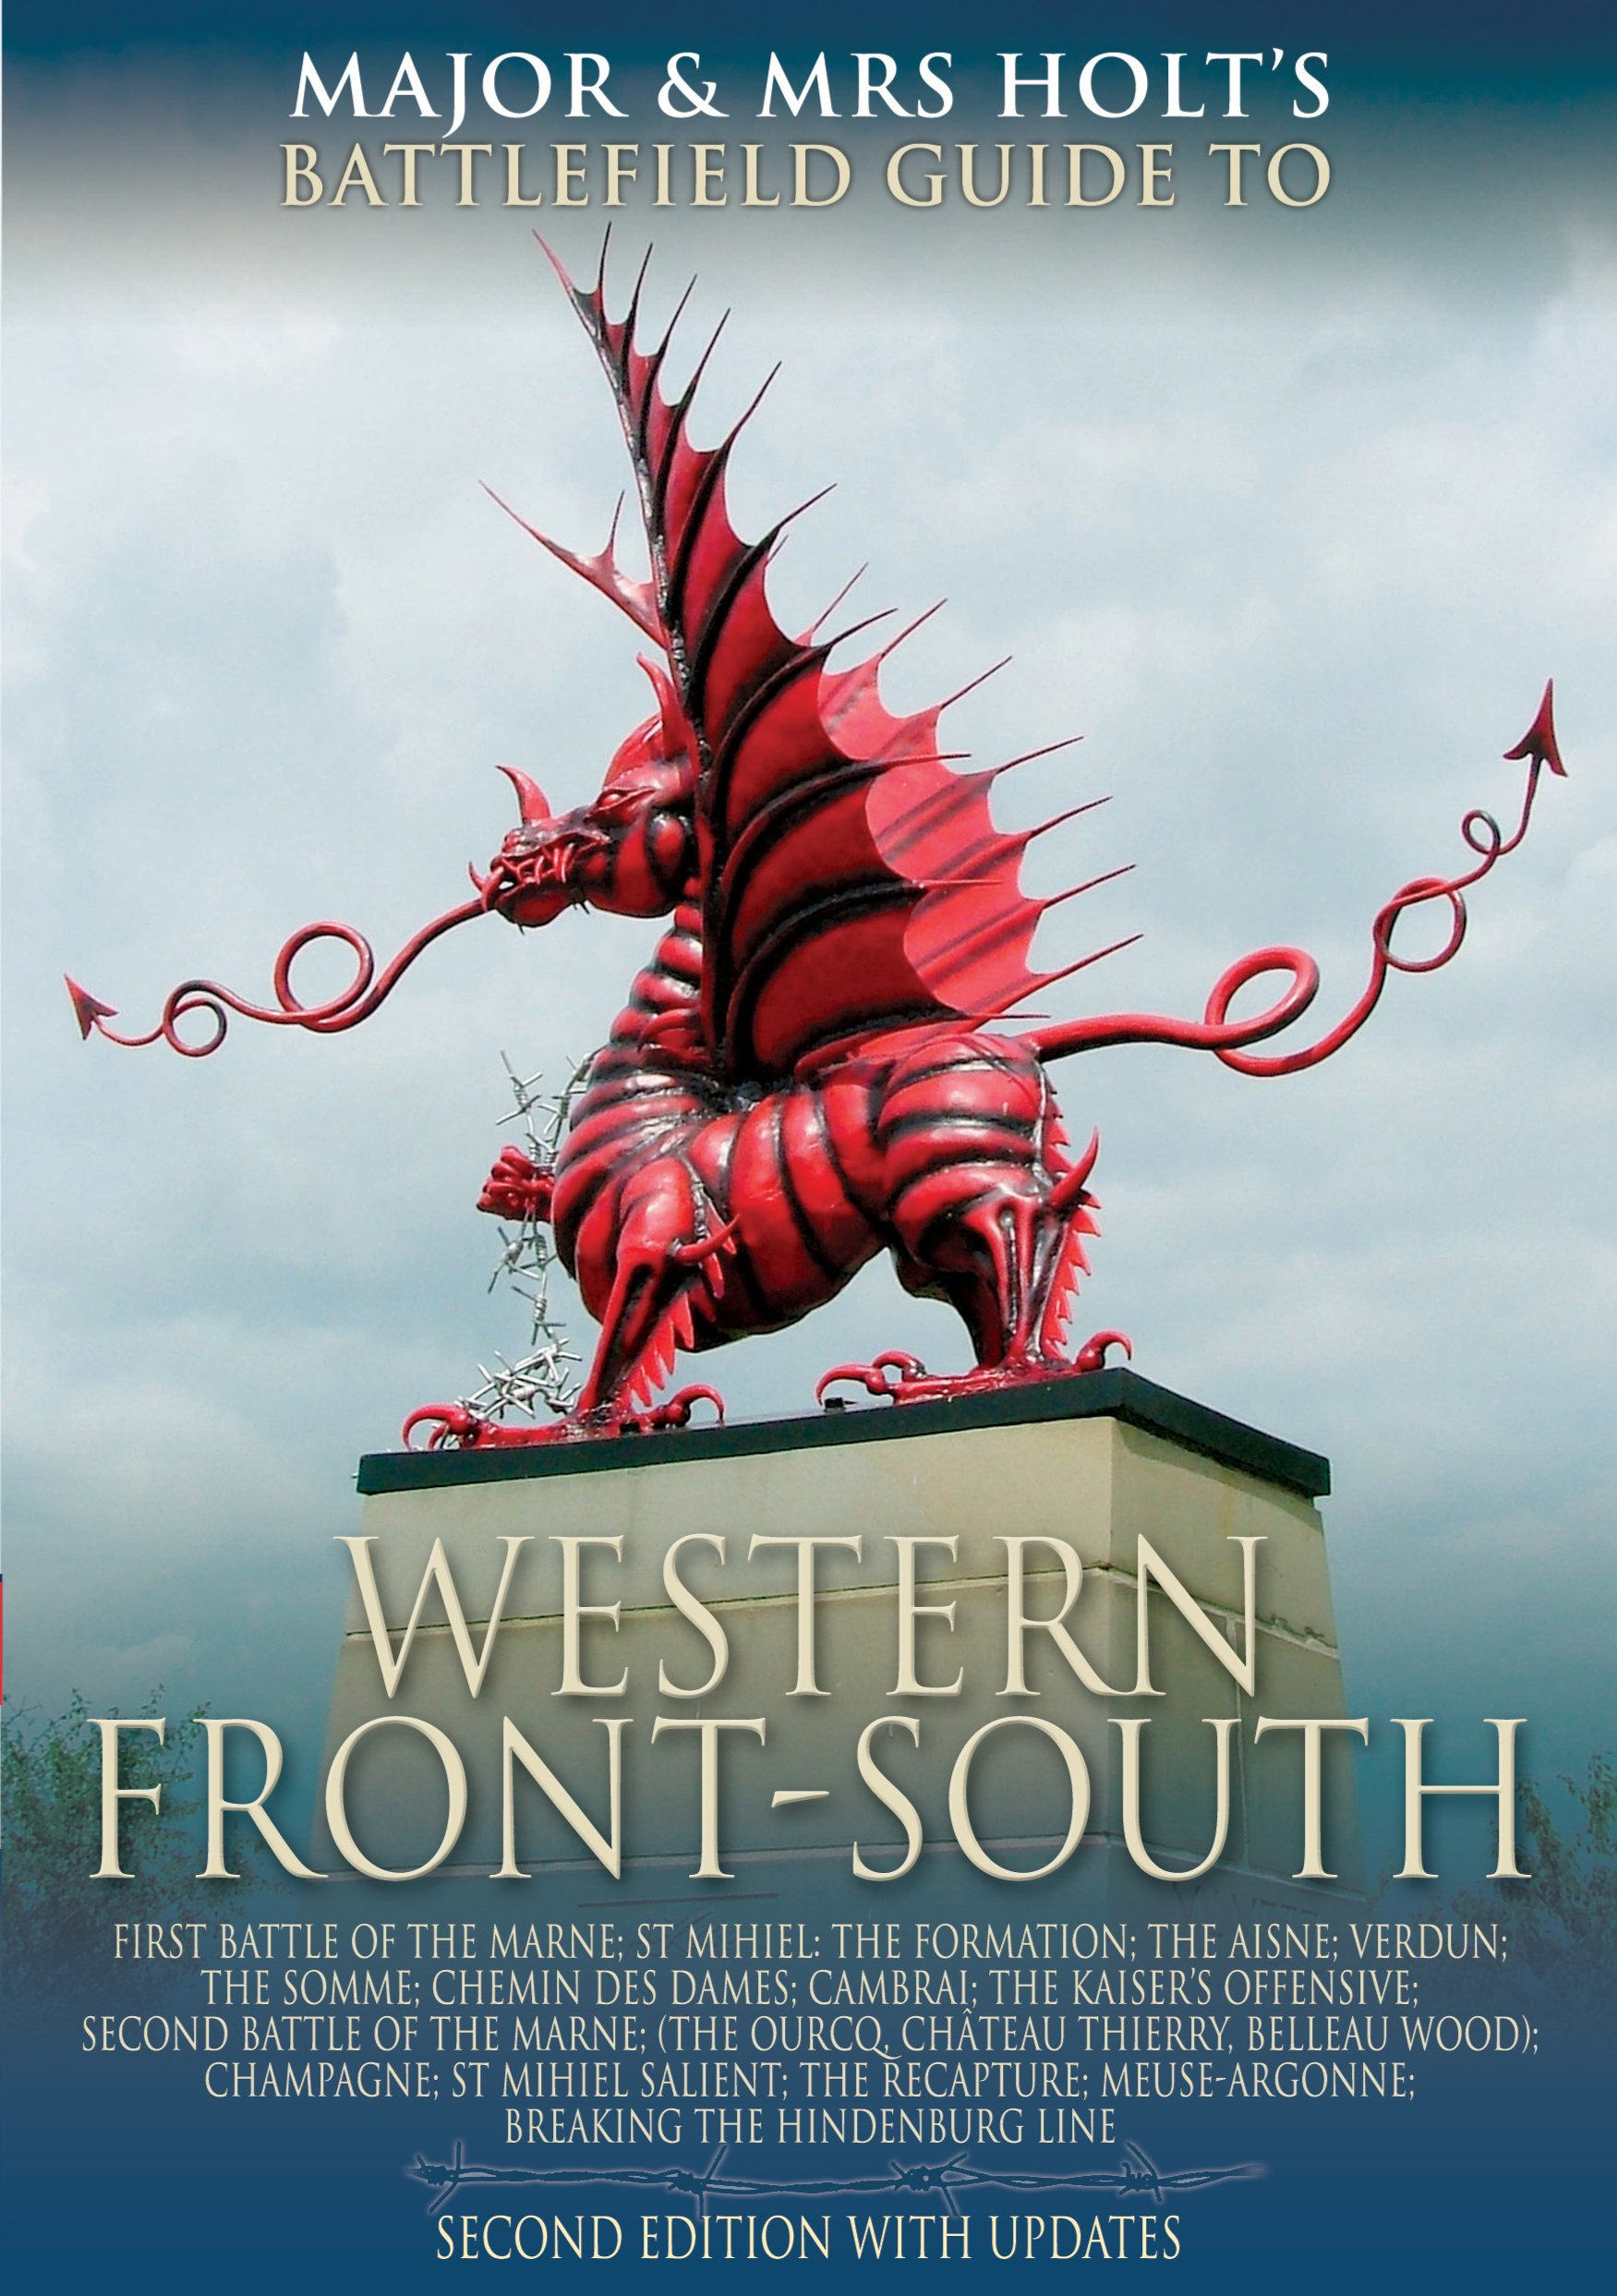 The Western Front - South: Battlefield Guide (Major and Mrs Holt's Battlefield Guides)